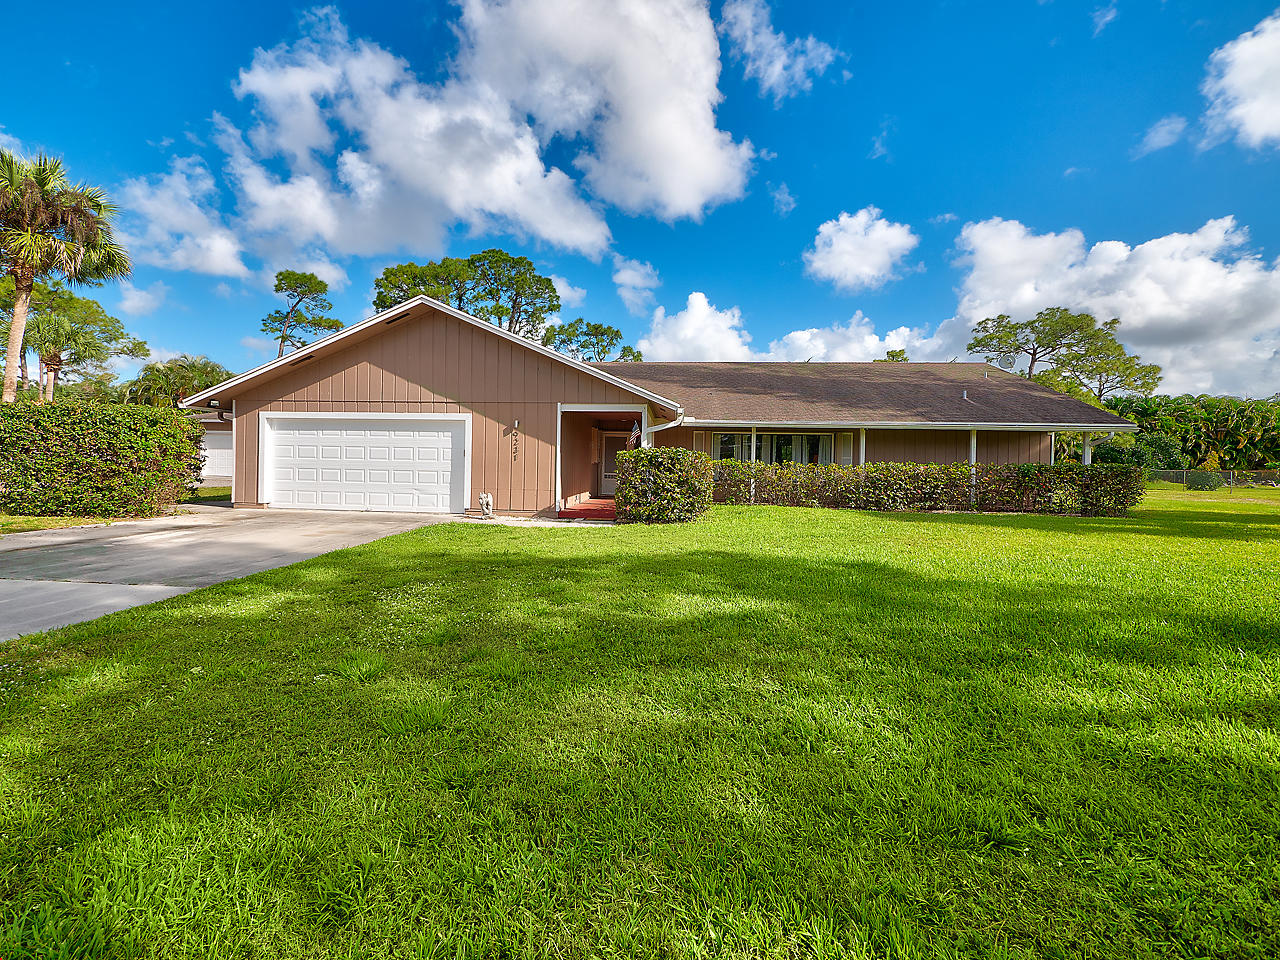 9231 Rodeo Drive, Lake Worth, Florida 33467, 3 Bedrooms Bedrooms, ,2 BathroomsBathrooms,A,Single family,Rodeo,RX-10611449